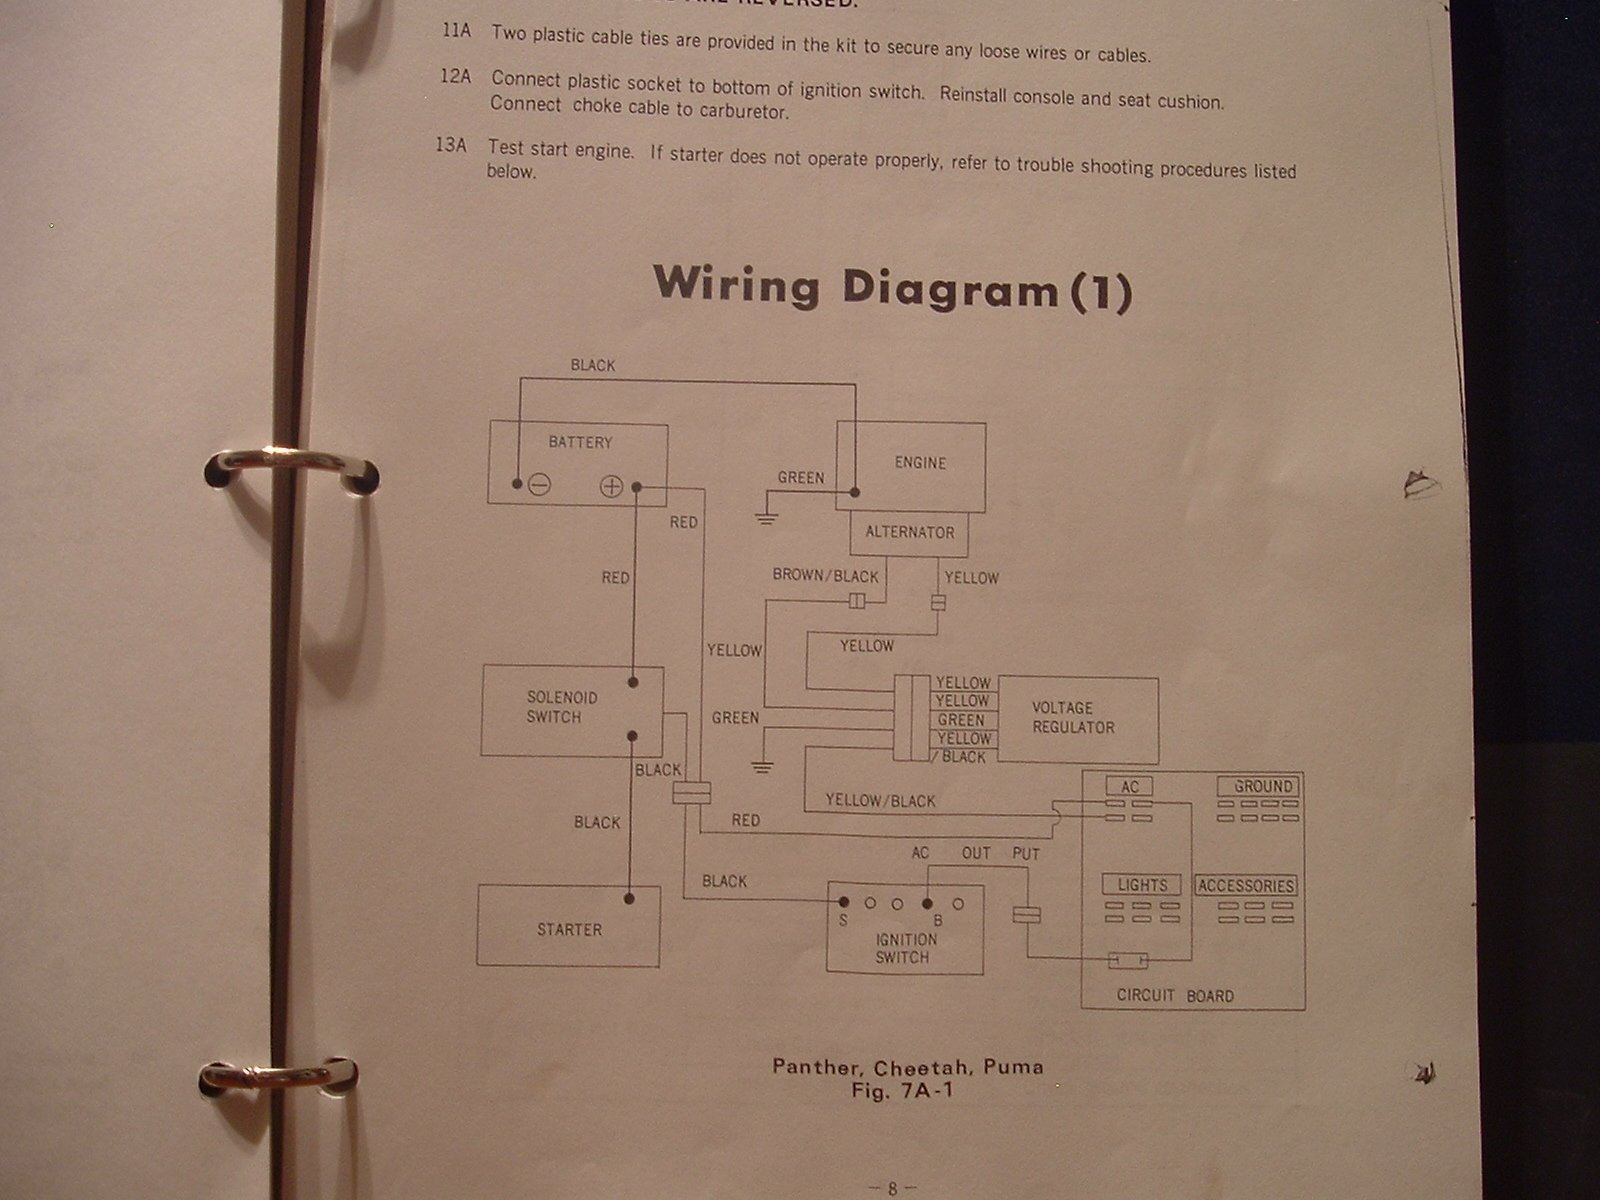 D Got Arctic Cat Master Service Manual Wiring likewise D Got Arctic Cat Master Service Manual Panther Wiring additionally Bottom Radio further Suzuki Lt L General Uk Sweden Brazil S Arab E E E E E Mag o Bigsue Fig D together with Chevrolet Camaro Radio Wire Diagram. on suzuki wiring diagram